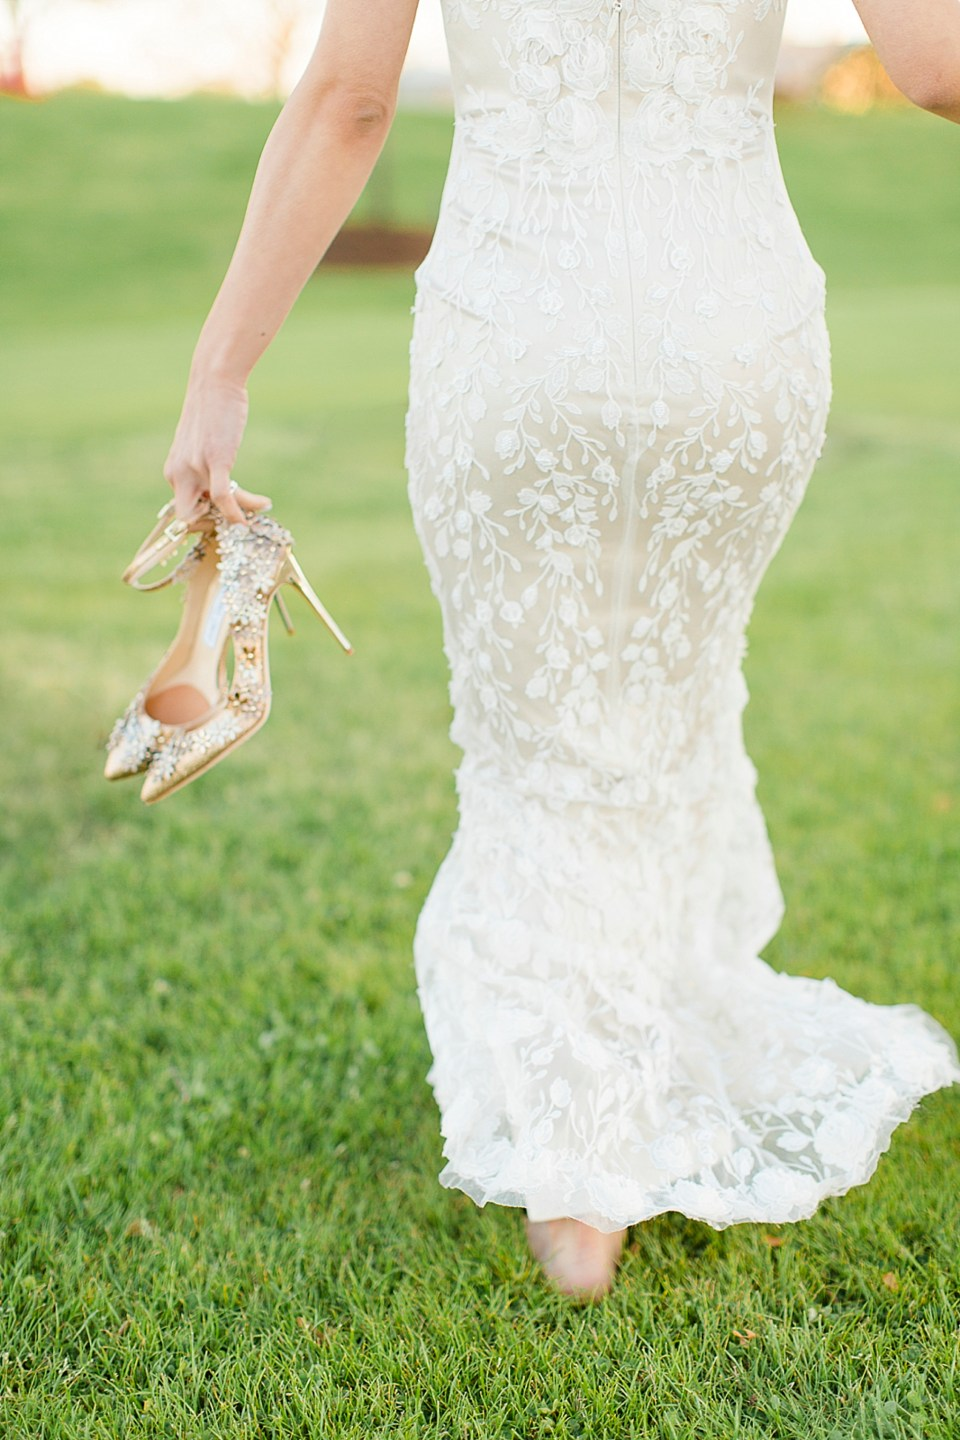 bride walking with shoes in hand